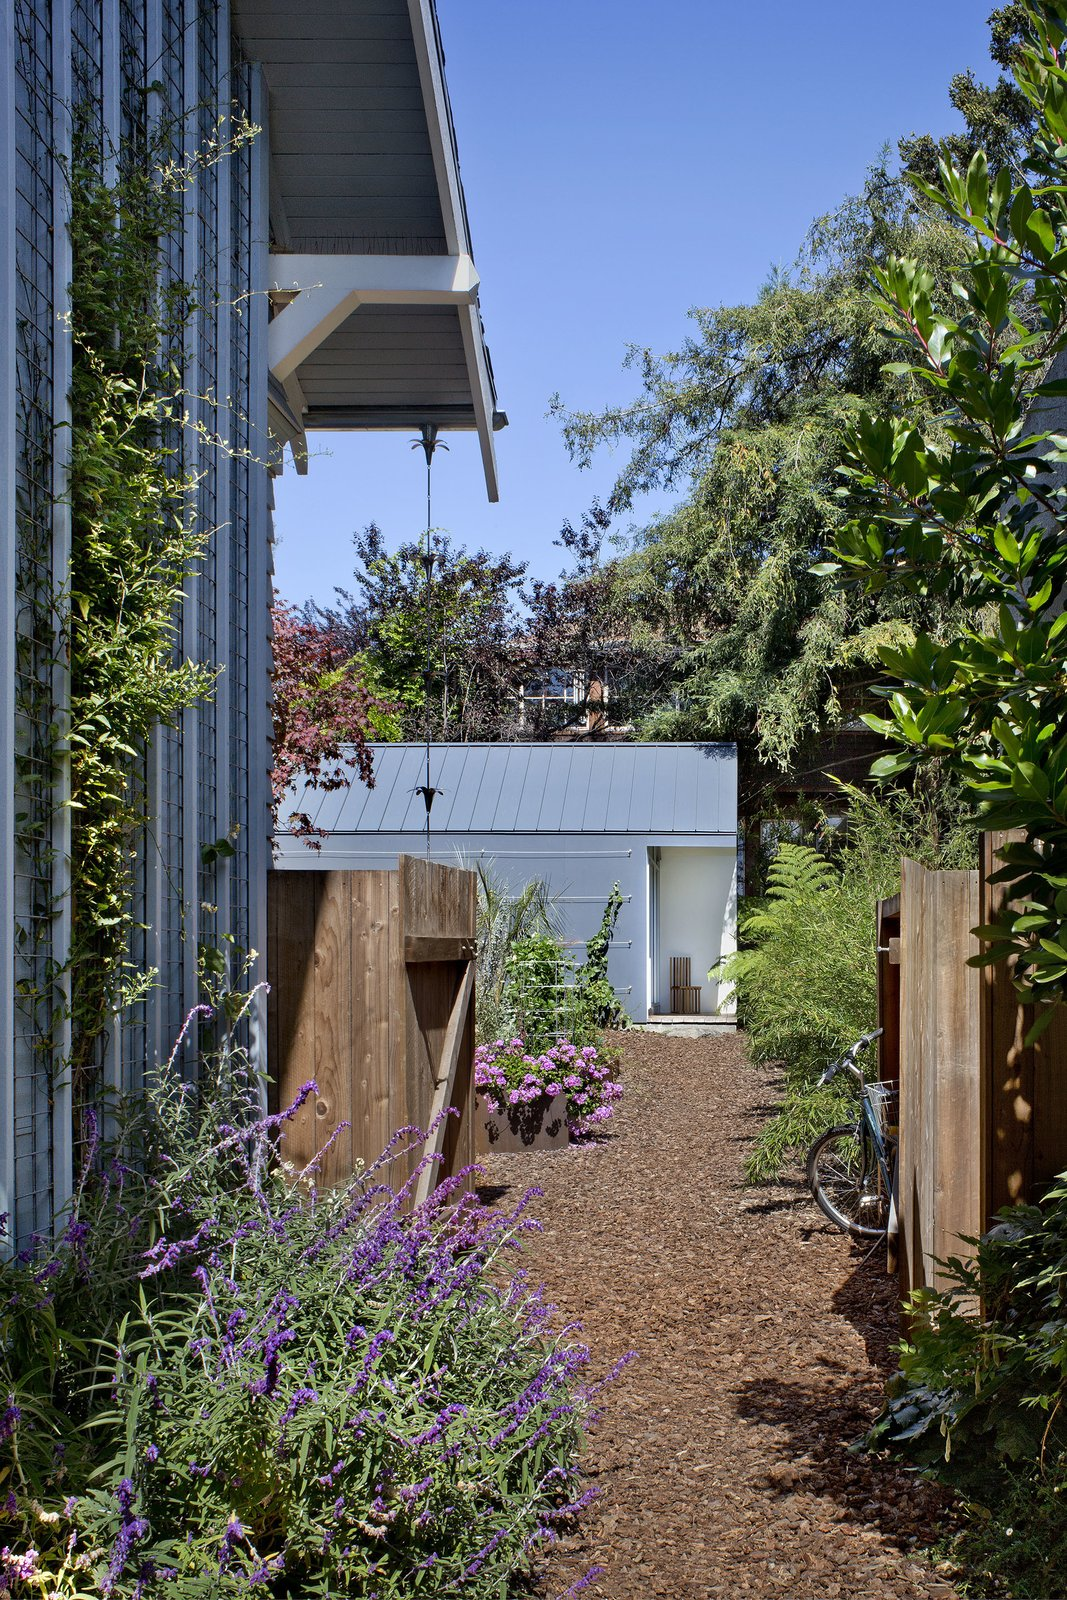 A Dilapidated Garage Transformed Into a Small Modern Cottage